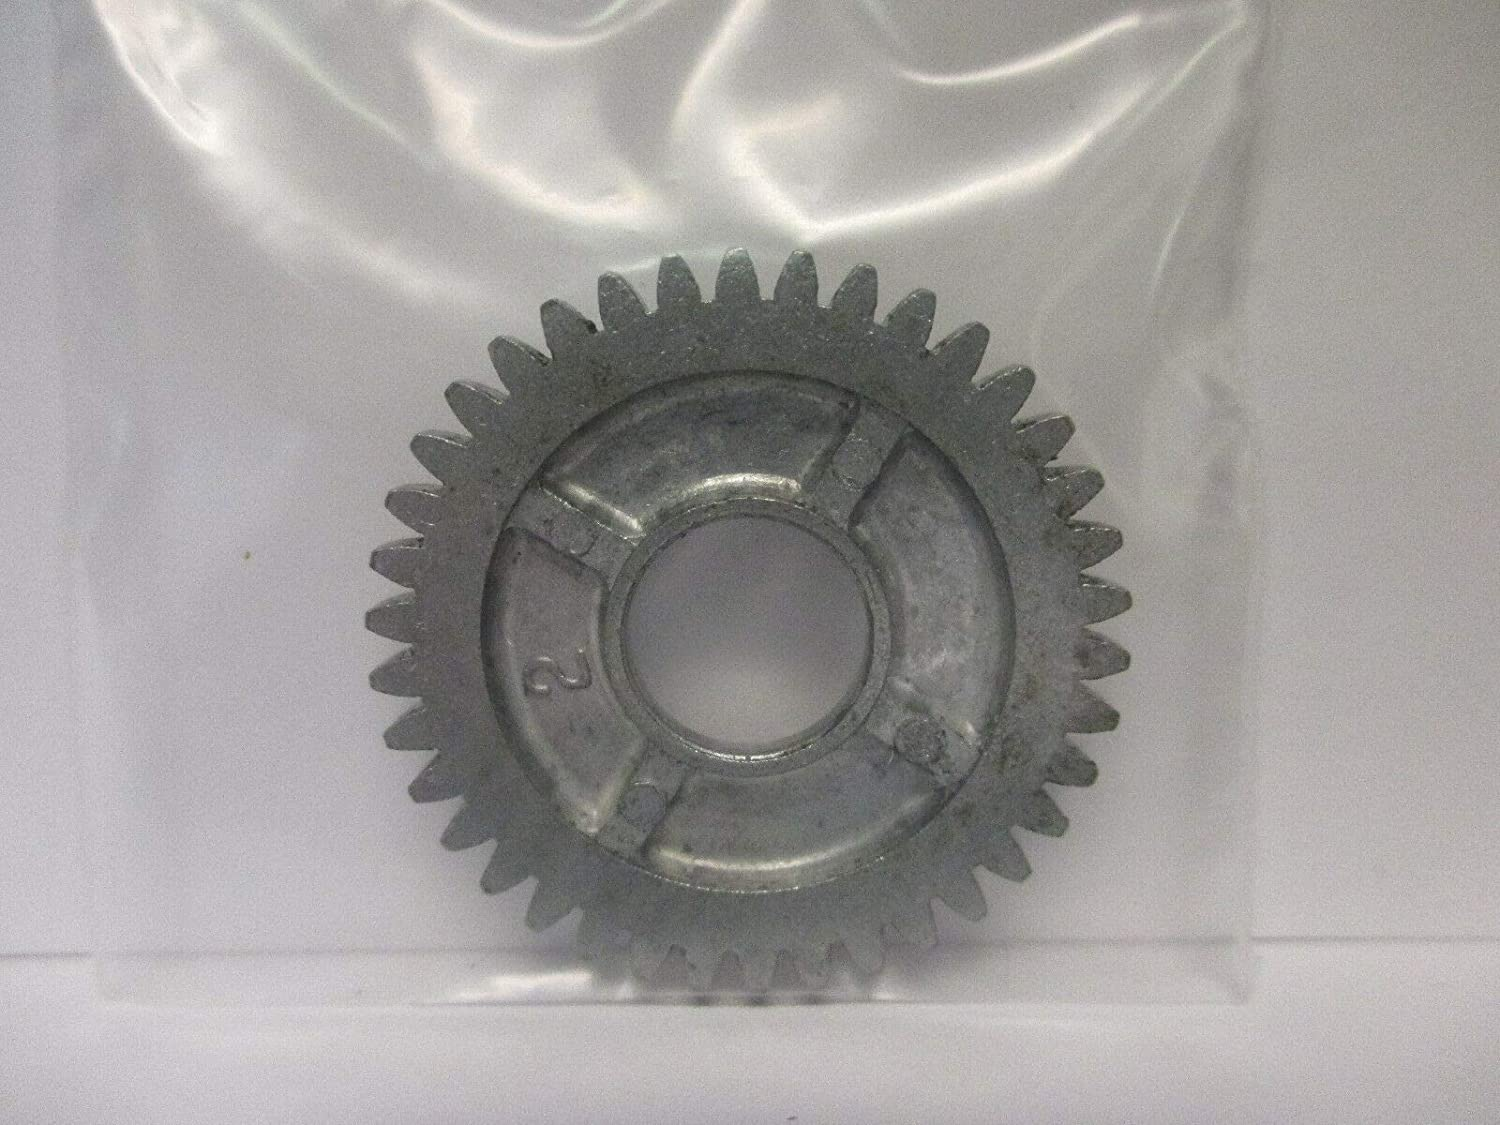 Oscillating Gear L11-4701 PS900BL NEW DAIWA SPINNING REEL PART